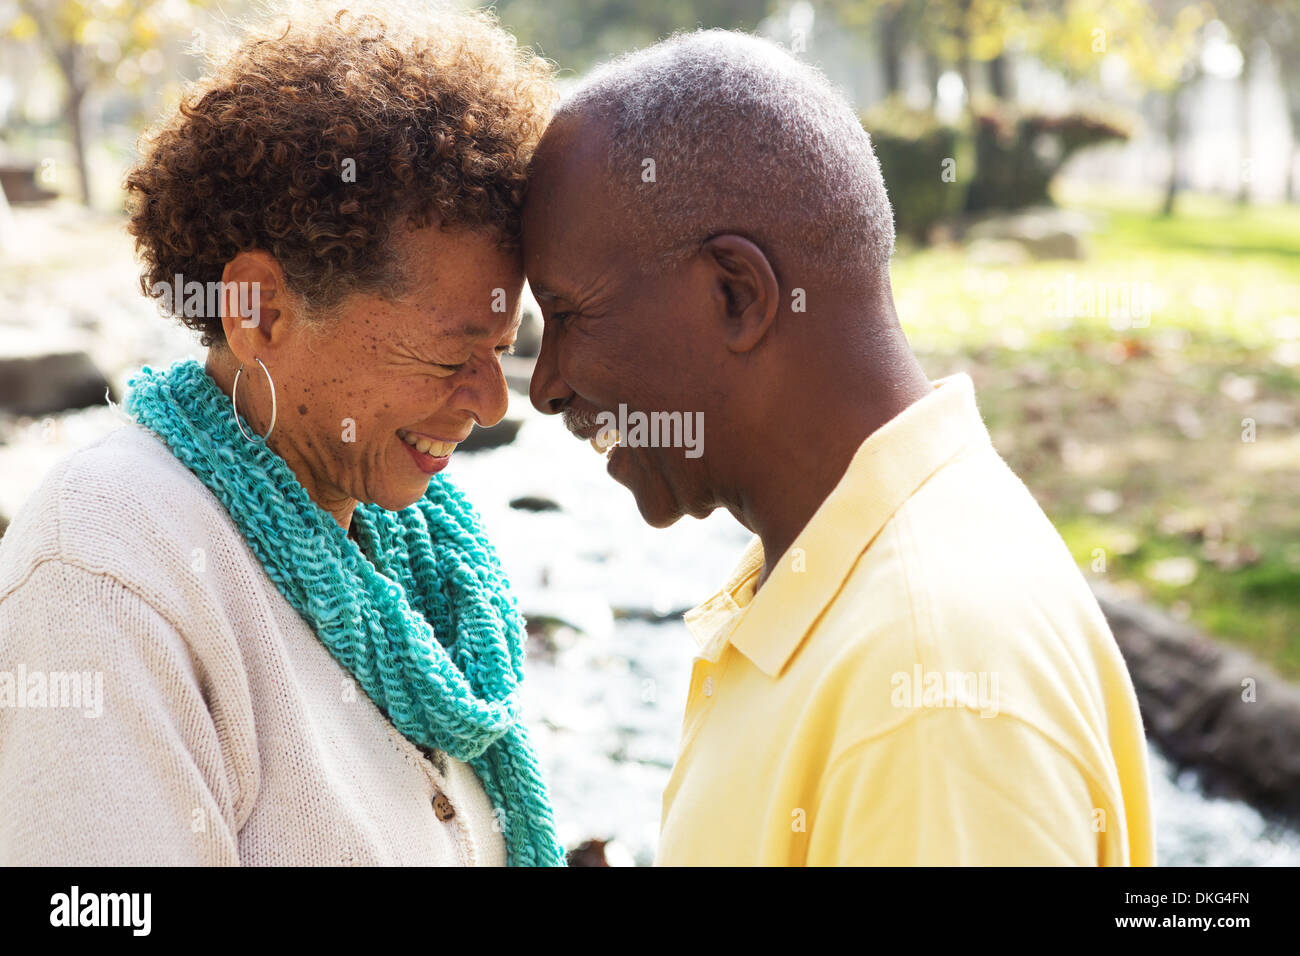 Senior couple face to face, smiling - Stock Image